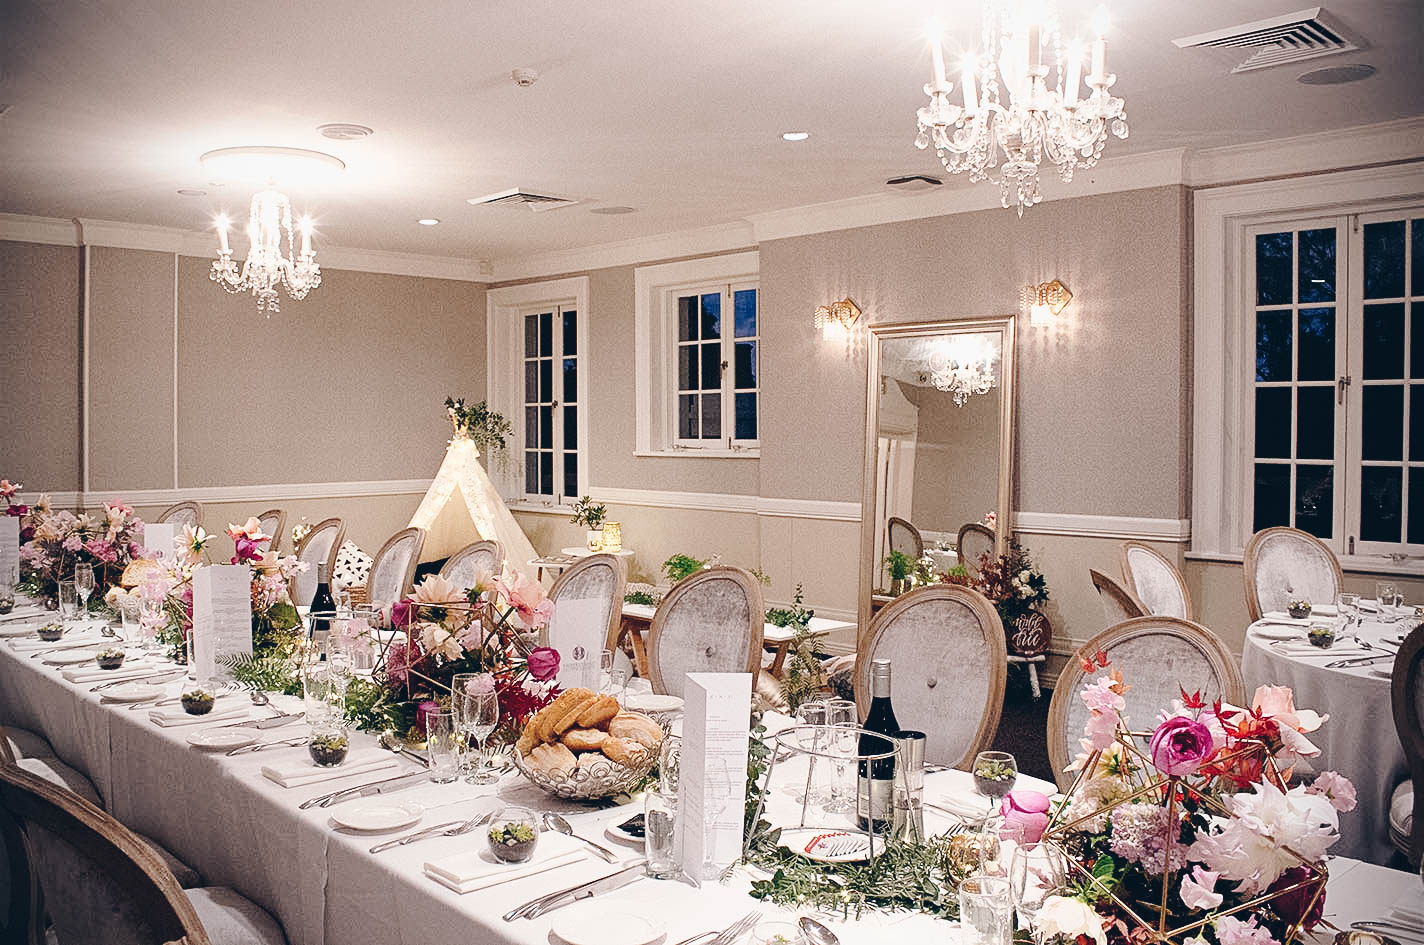 sydney-event-oatlands-house-elegant-reception-wedding-styling.jpg